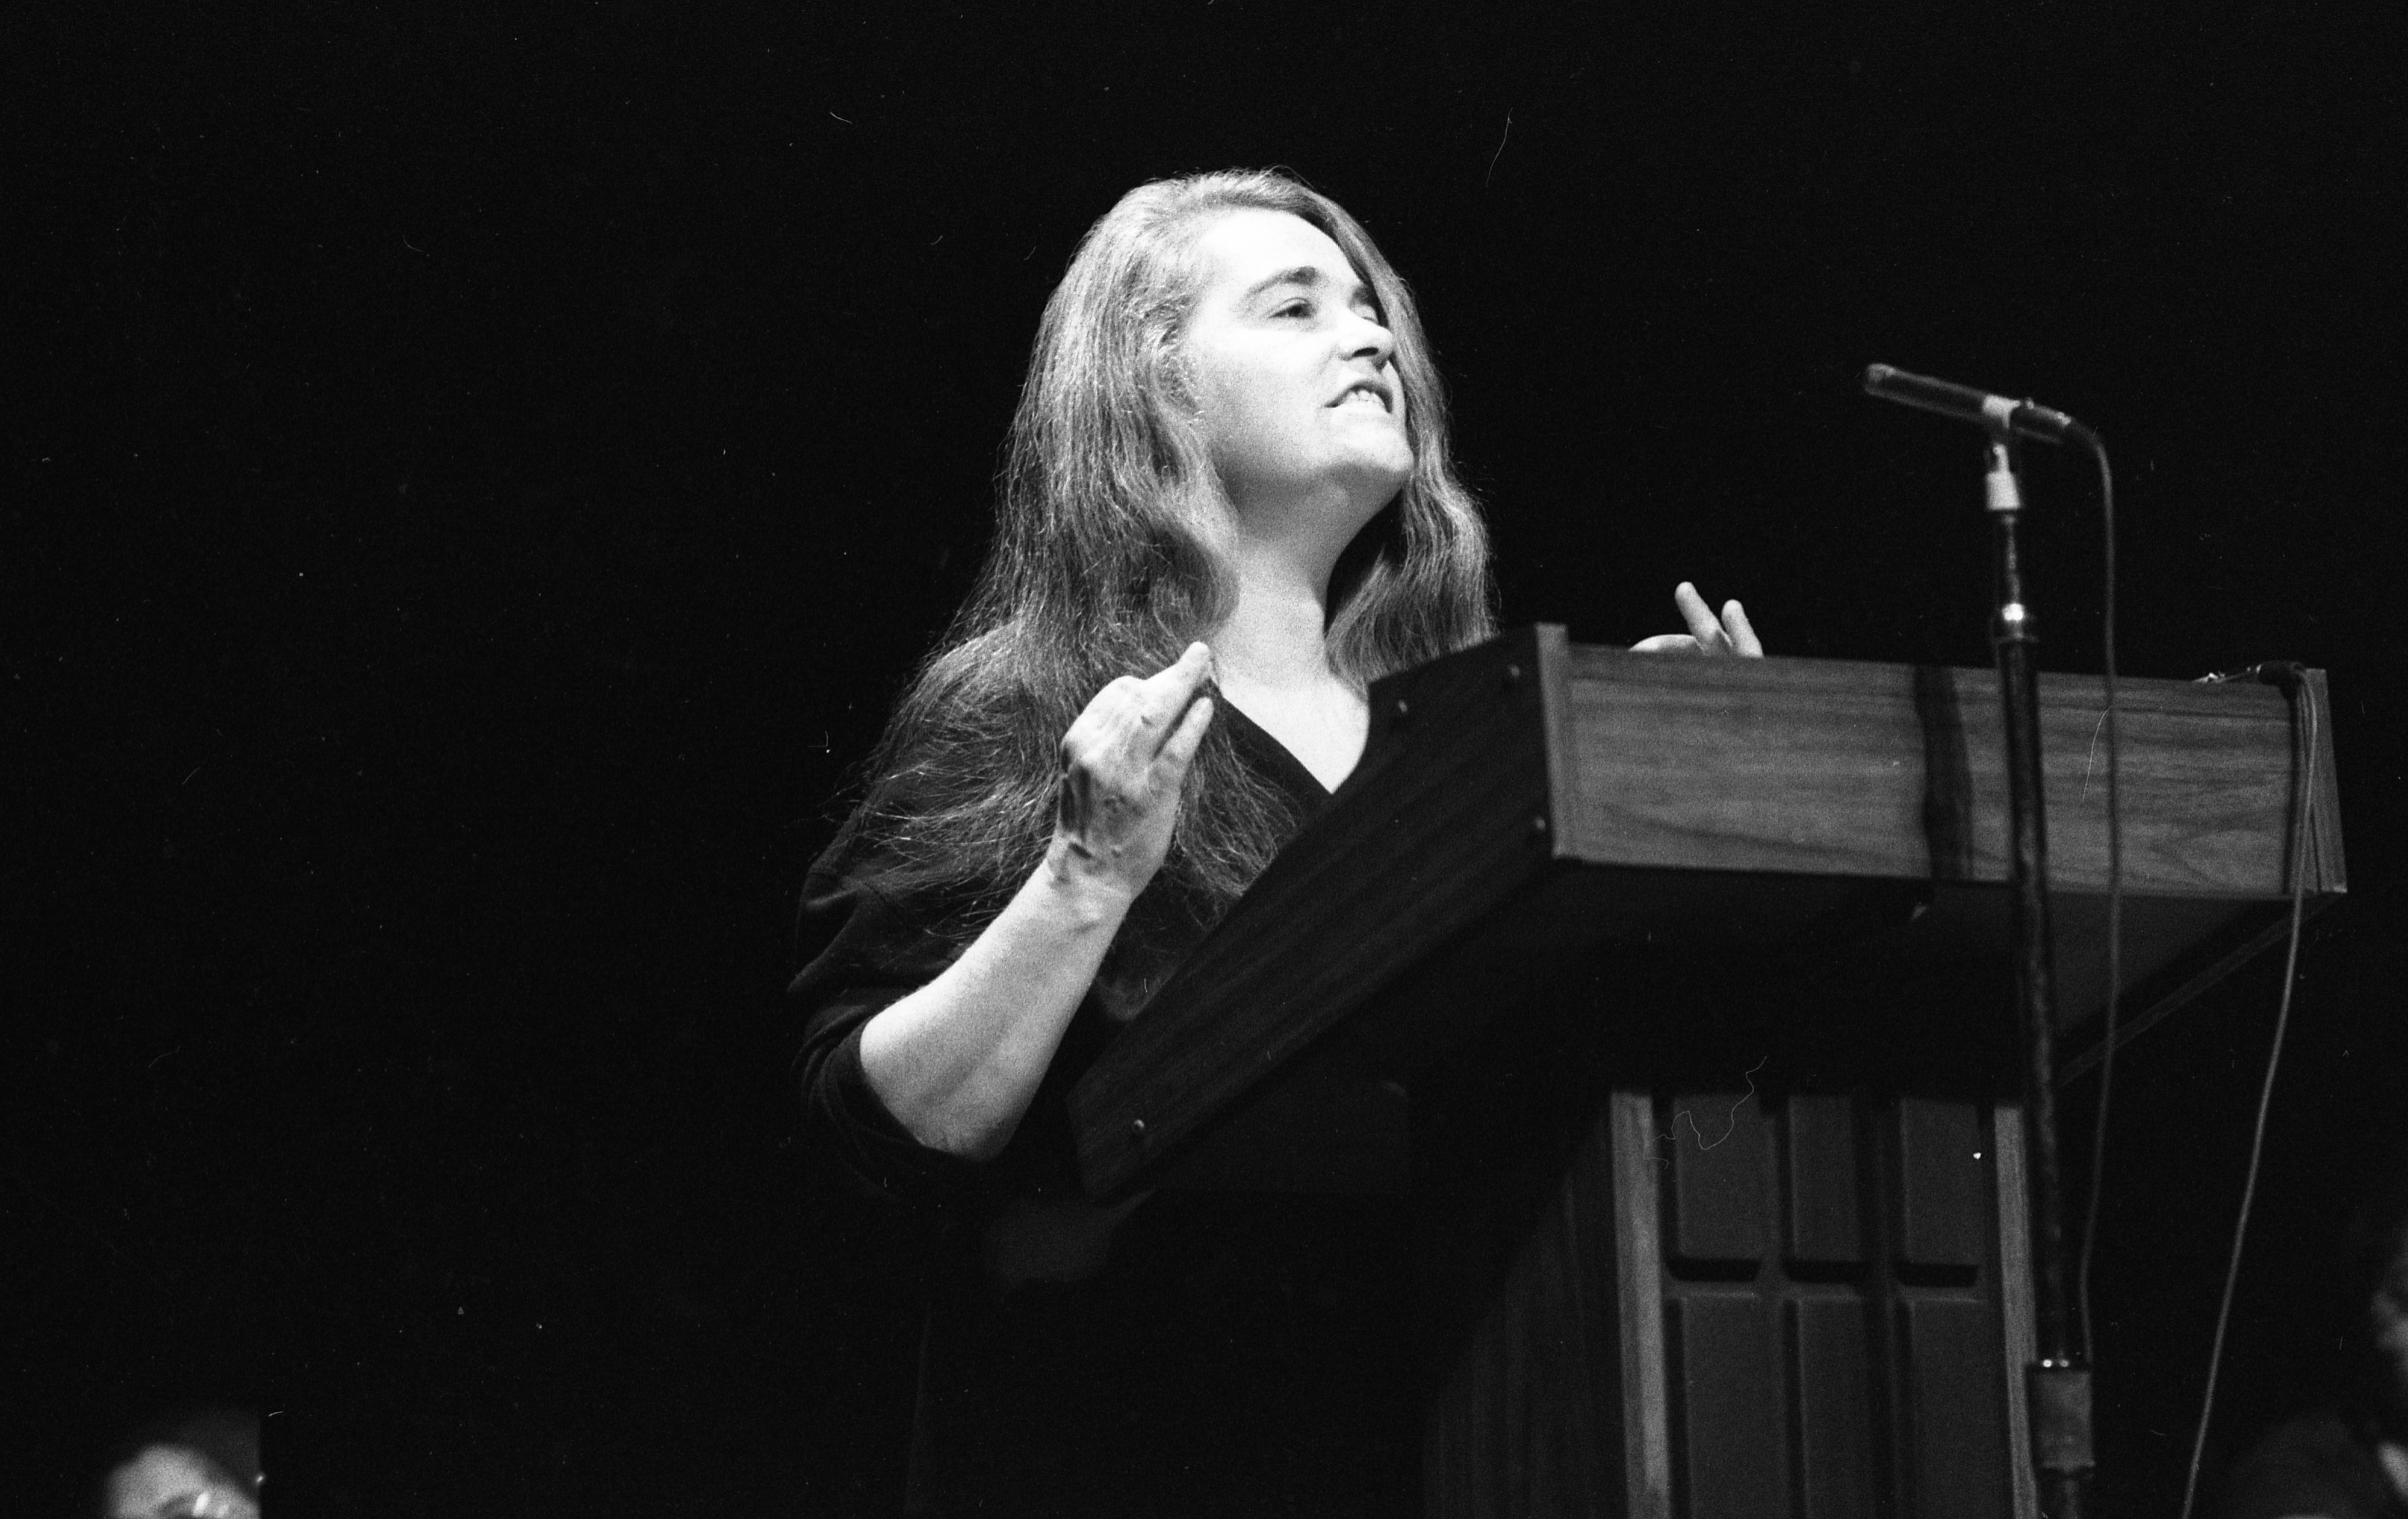 Kate Millett Speaks At The Power Center, October 13, 1982 image